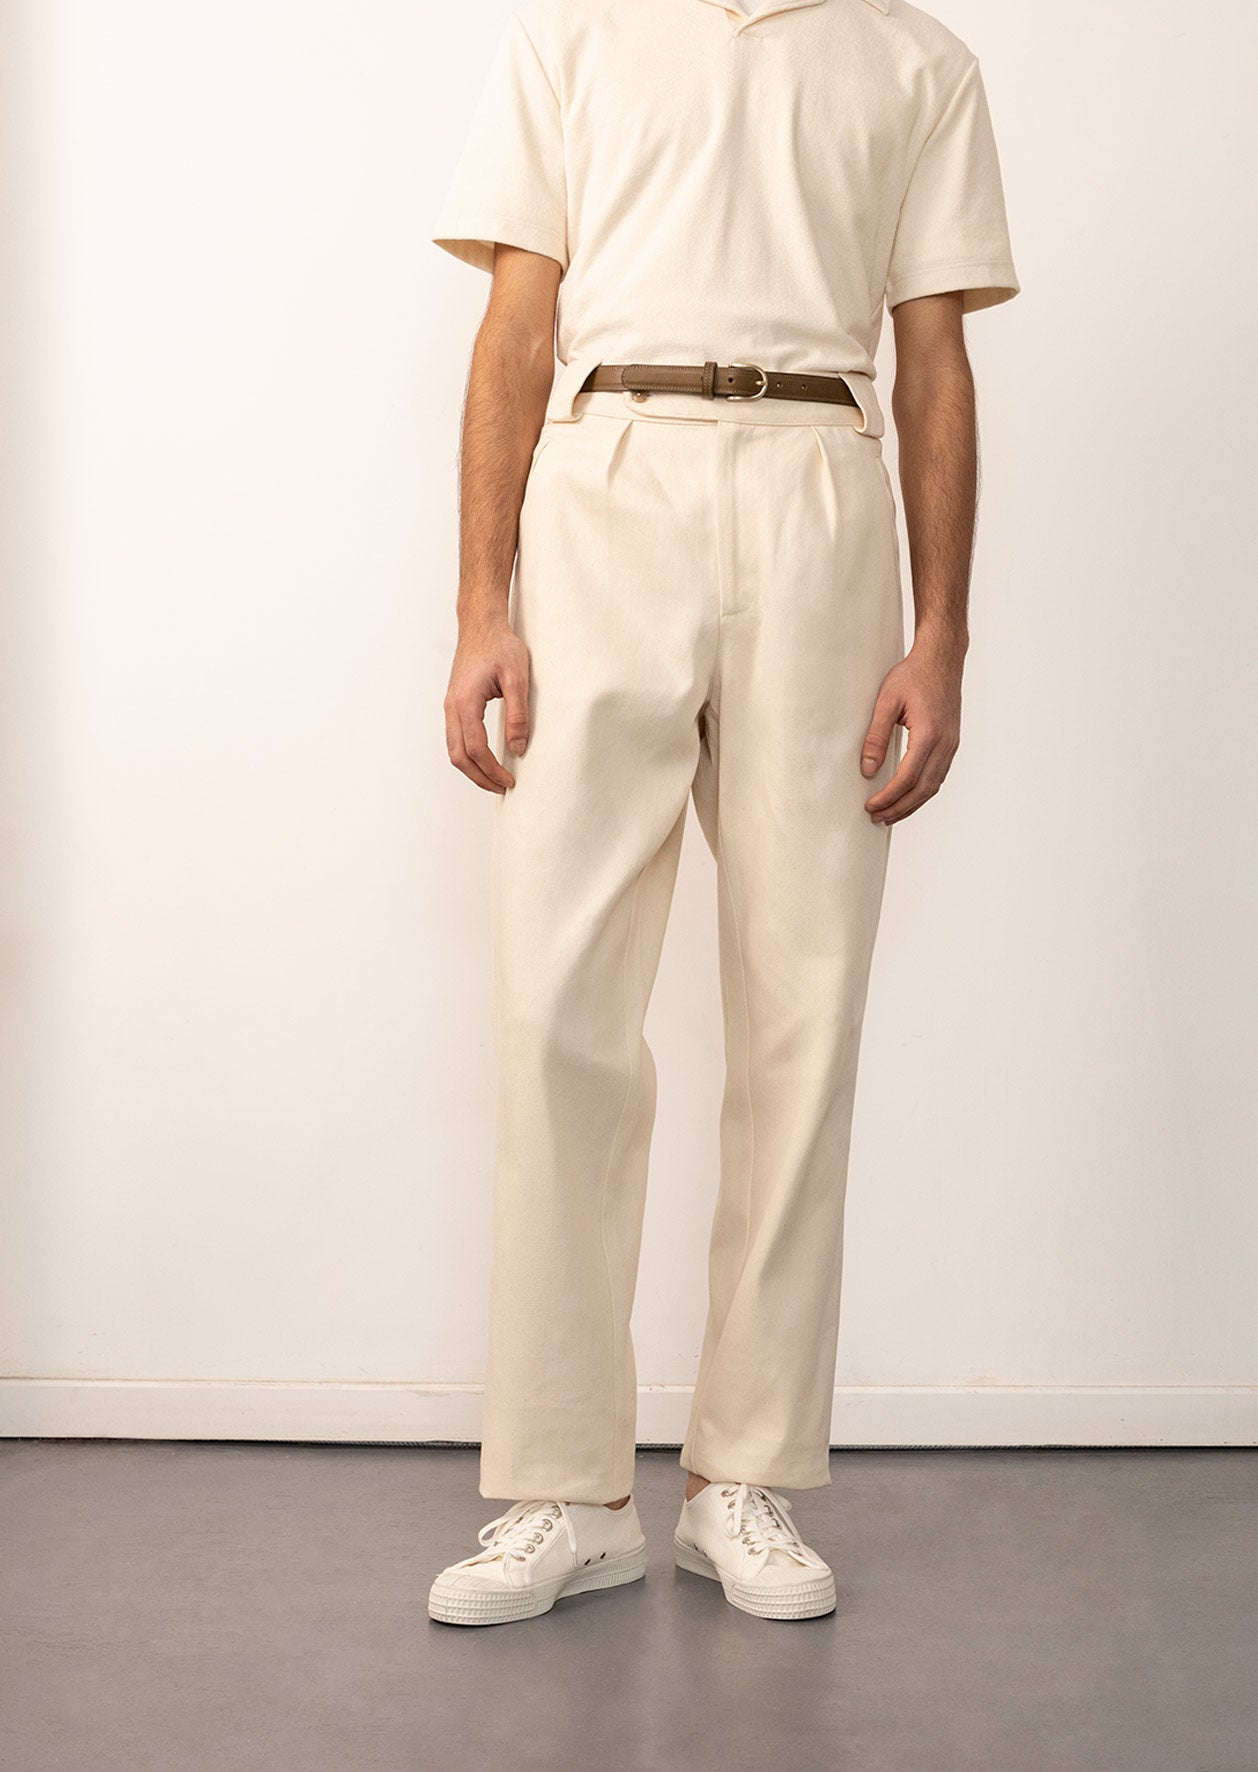 De Bonne Facture - Hiking trousers - Organic cotton twill - Undyed